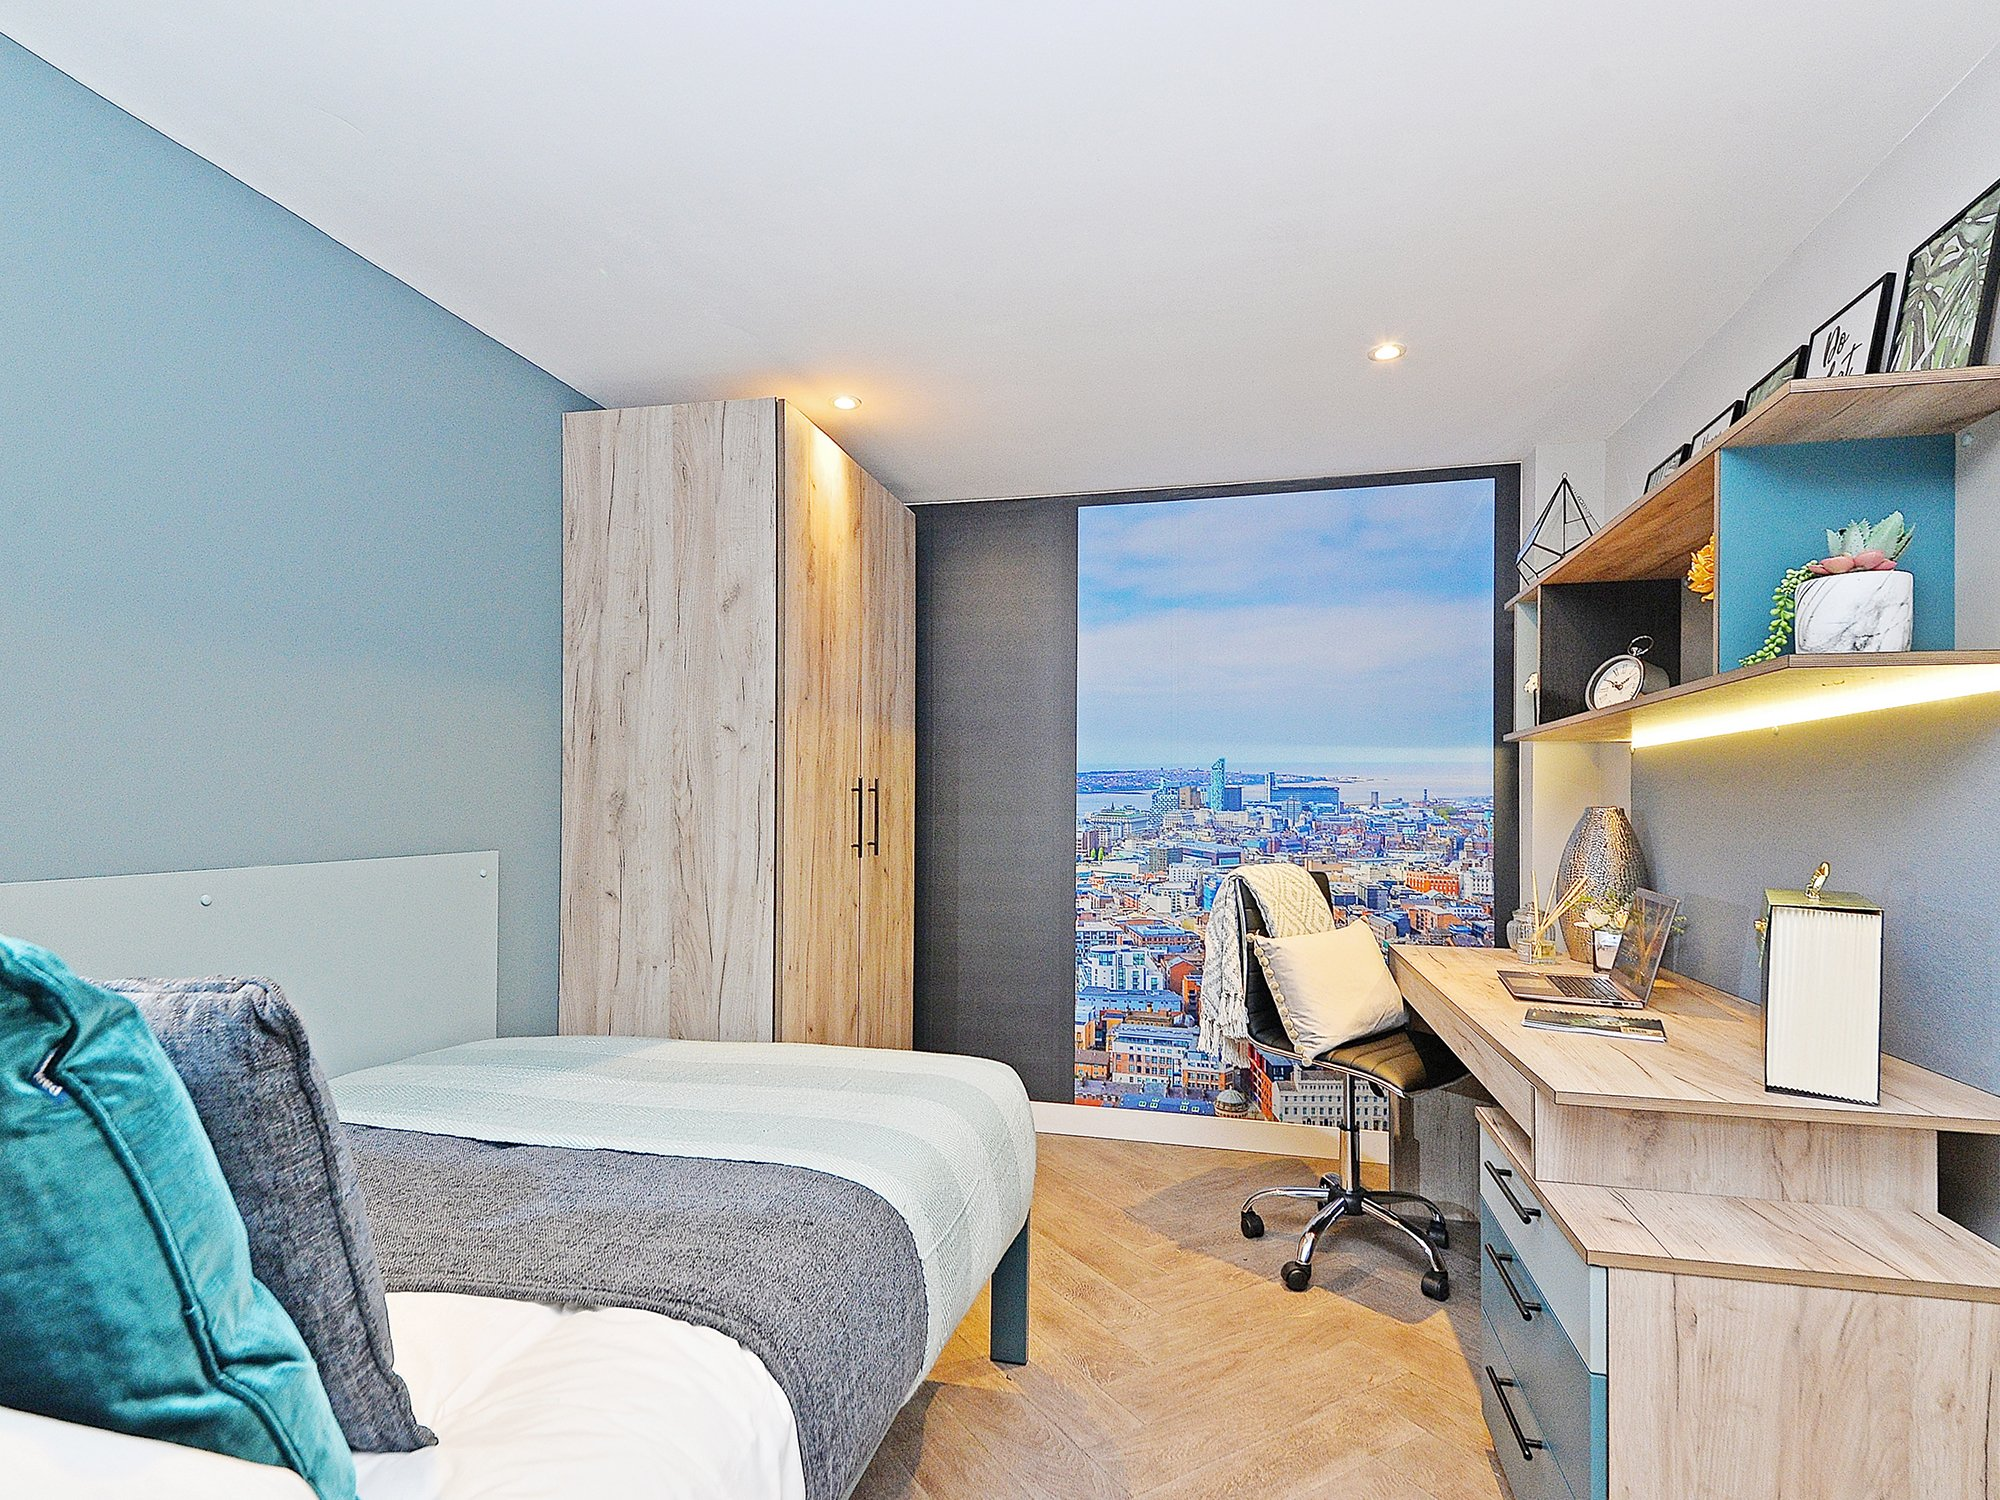 Student Accommodation Bowline Room Liverpool